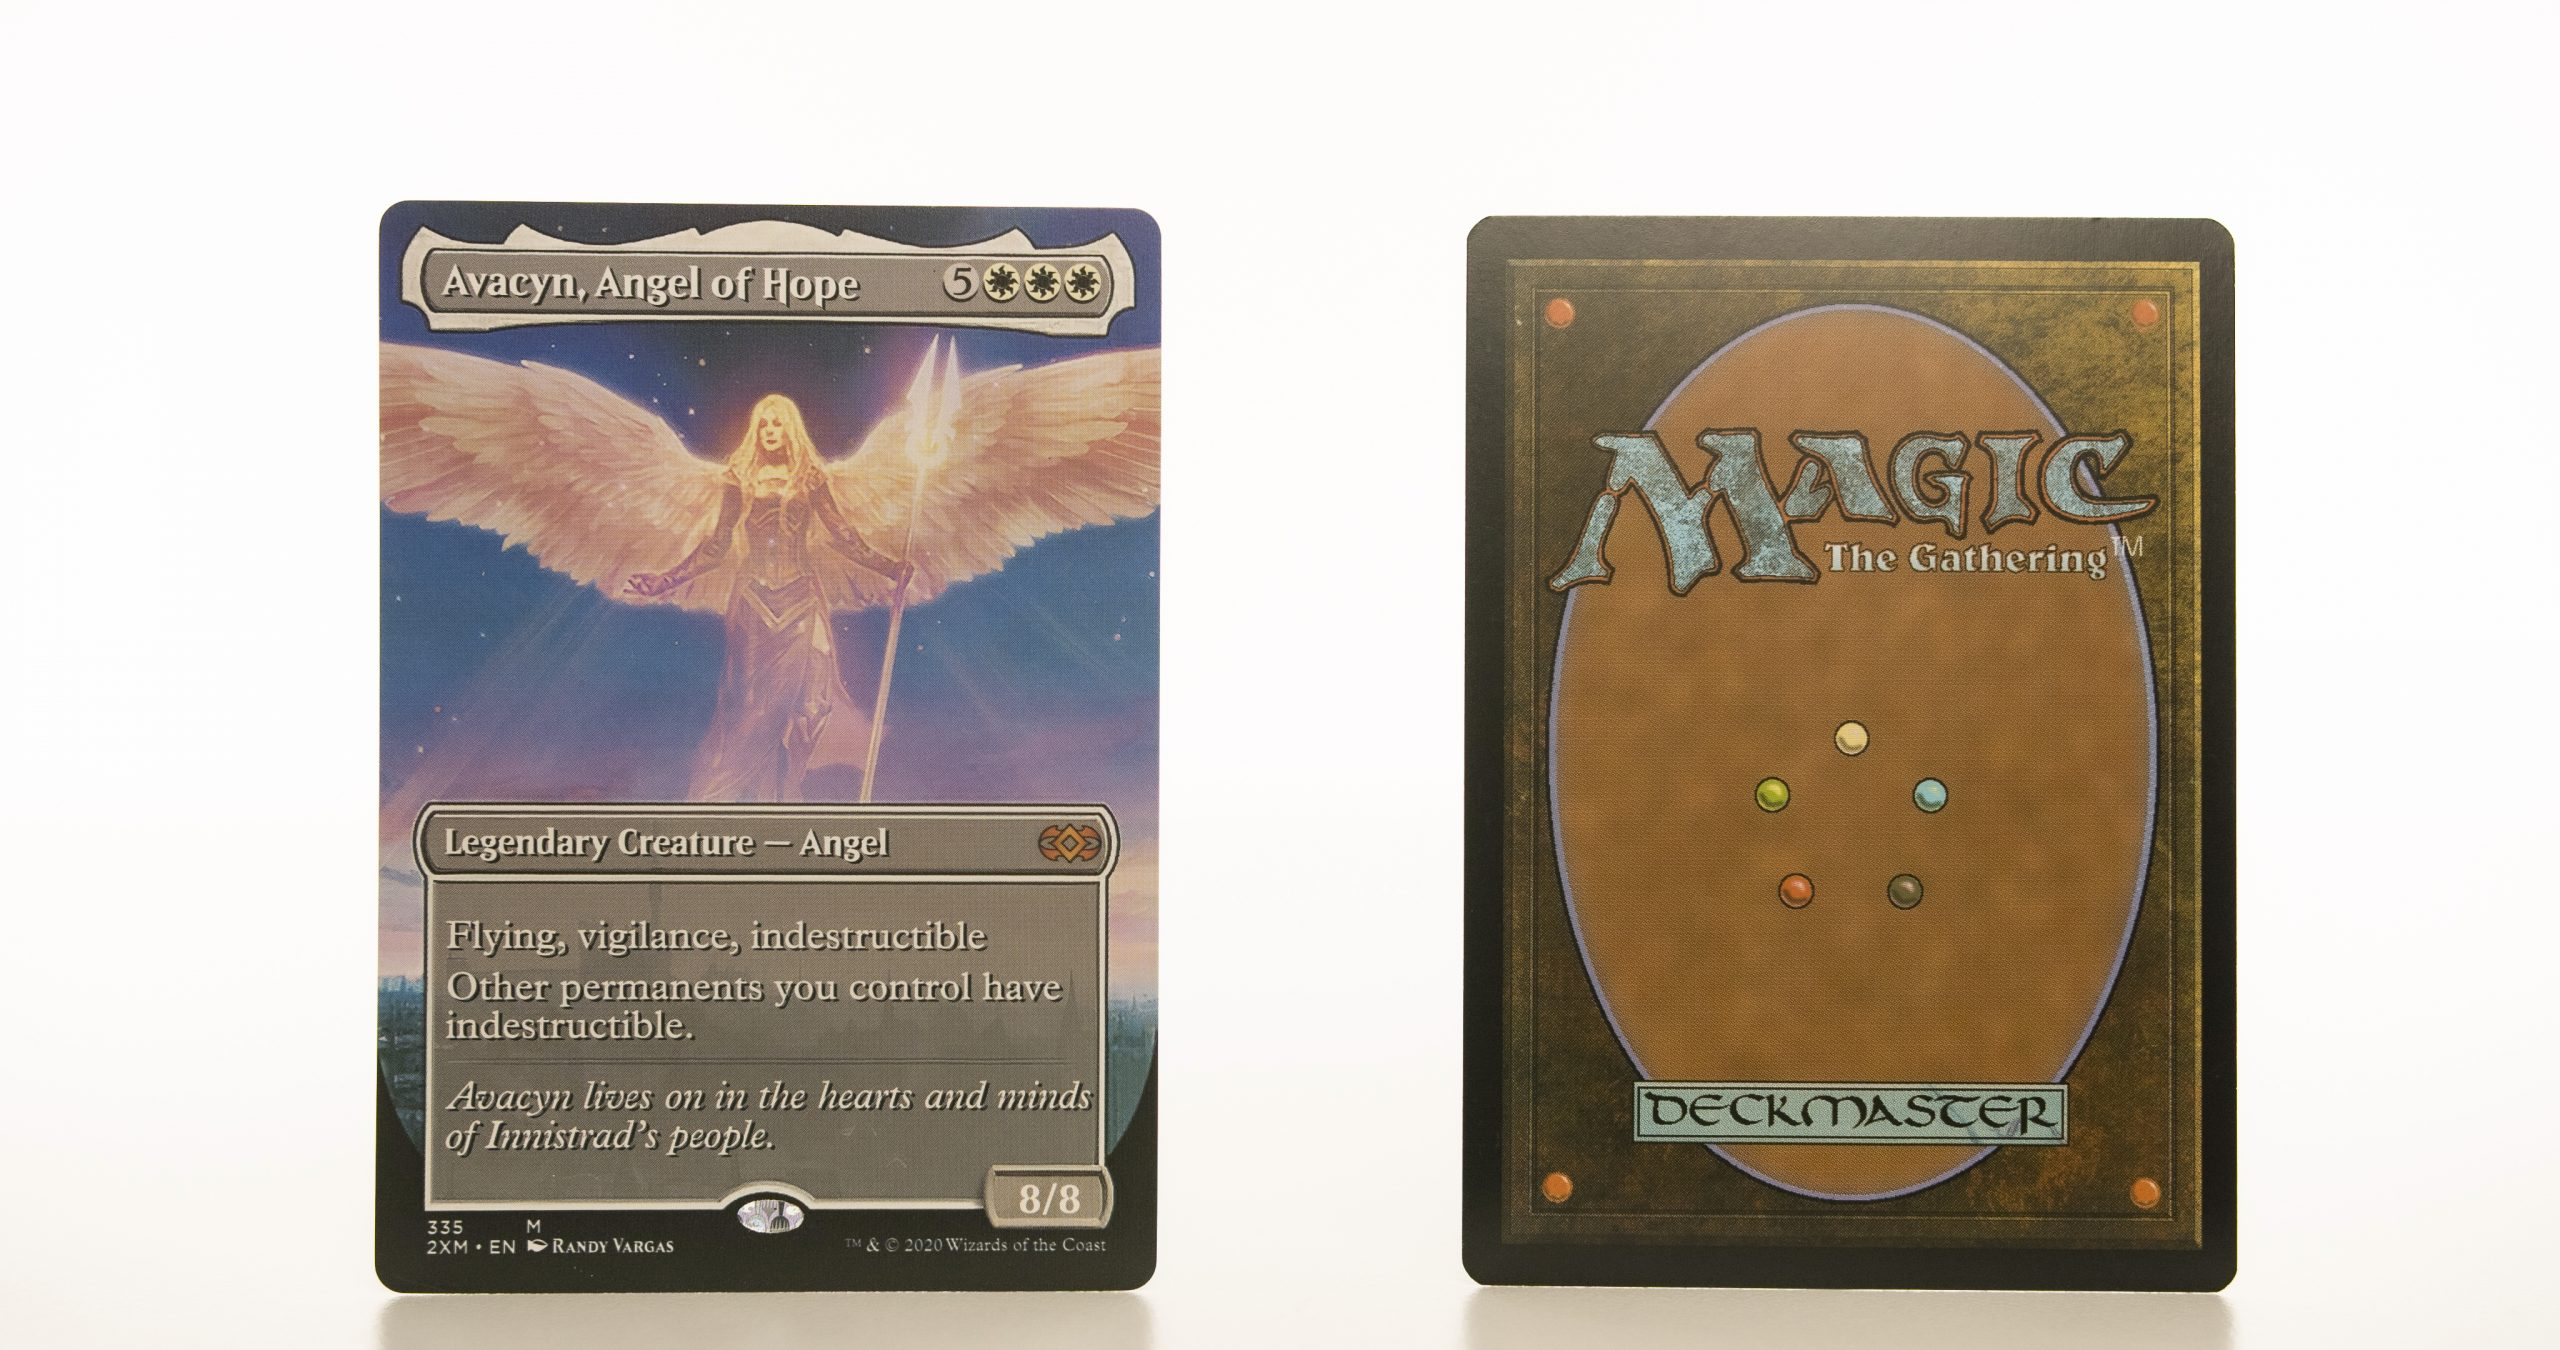 Avacyn, Angel of Hope extended art 2XM Double Masters hologram mtg proxy magic the gathering tournament proxies GP FNM available